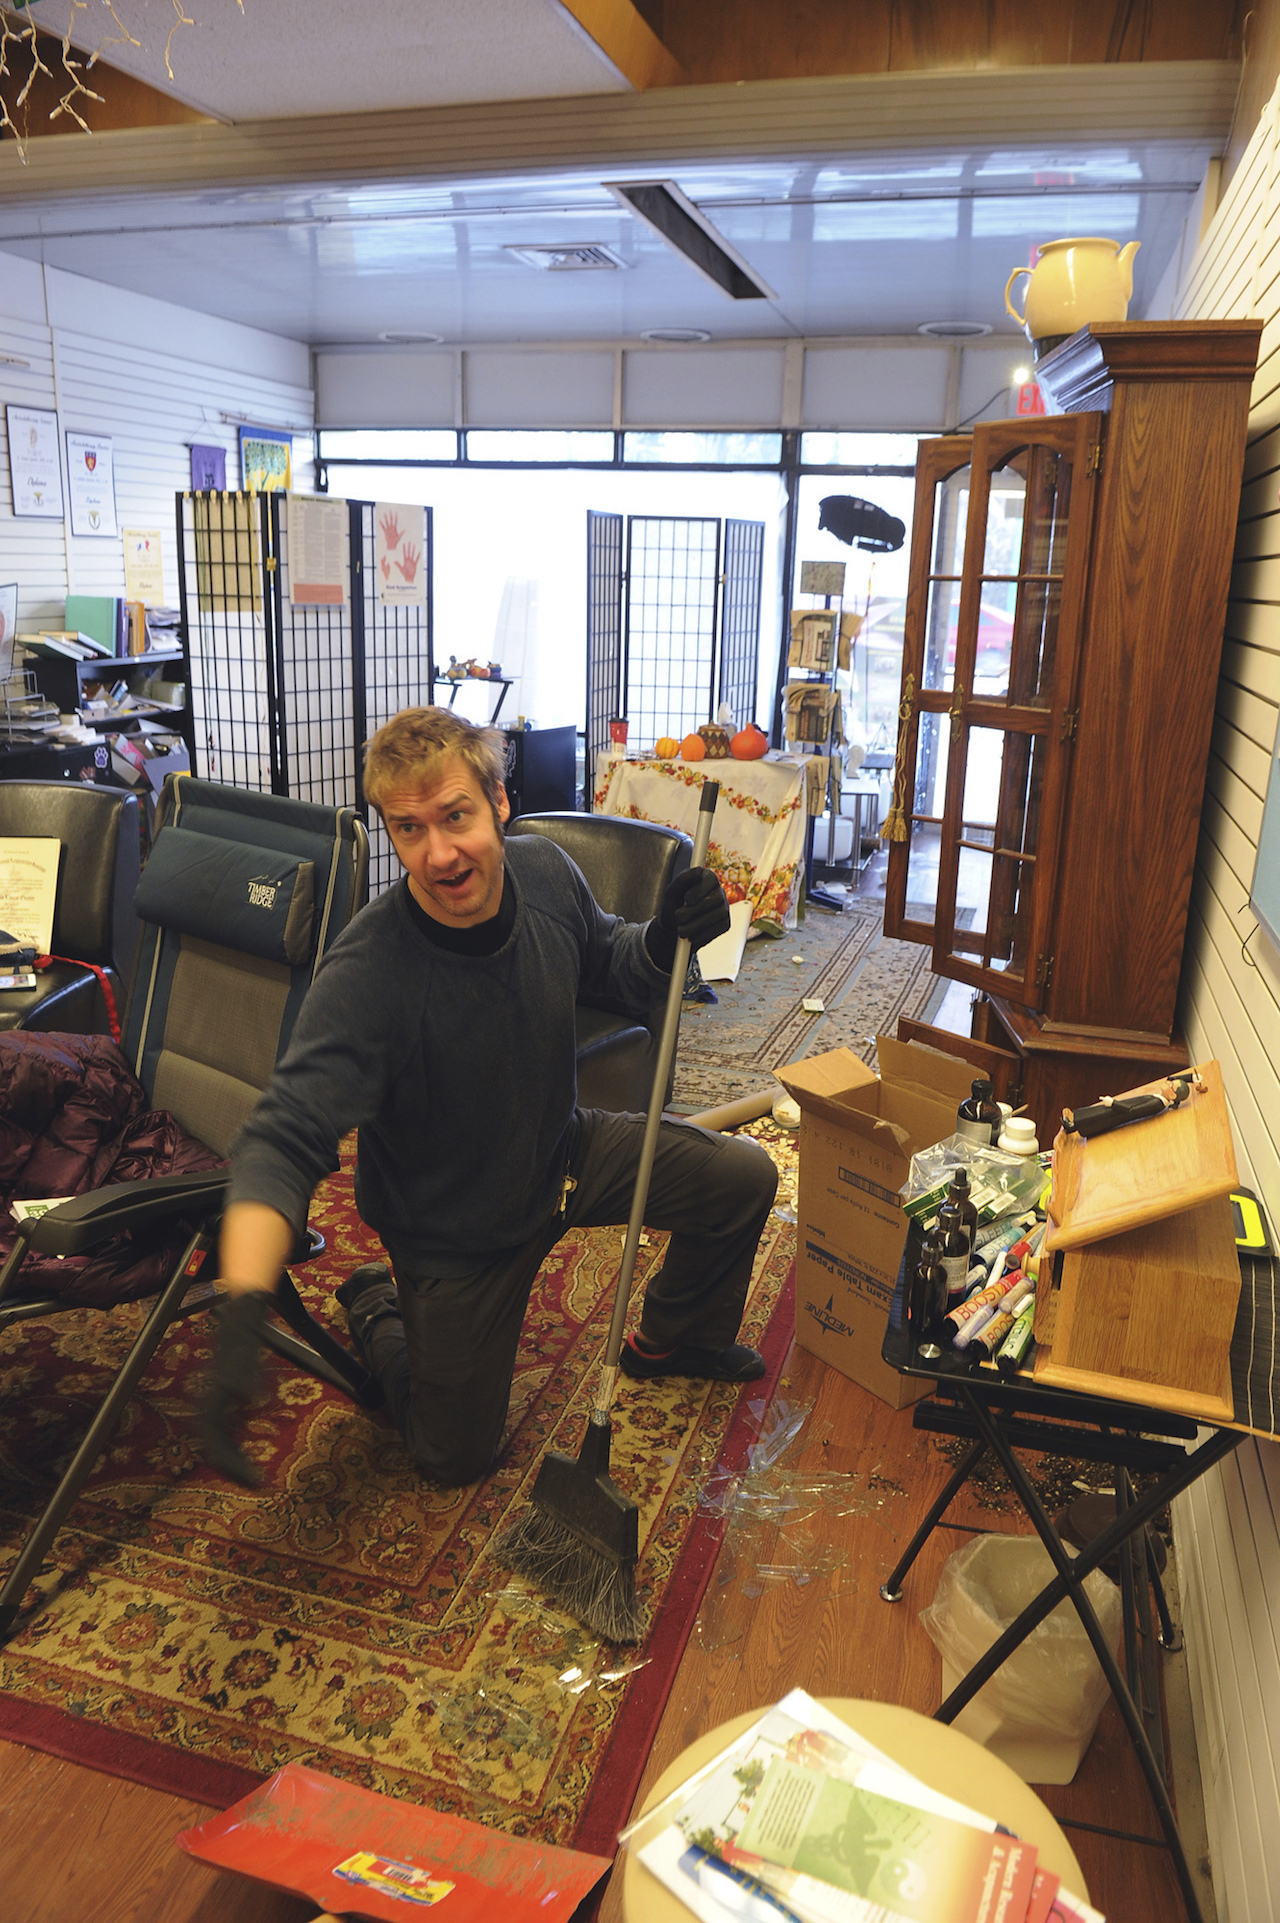 "<div class=""meta image-caption""><div class=""origin-logo origin-image ap""><span>AP</span></div><span class=""caption-text"">Tristan Covina helps clean up broken glass in the offices of Institute Alaska in Anchorage, Alaska following the morning's earthquake which caused damage to the local area. (AP Photo/Mike Dinneen)</span></div>"